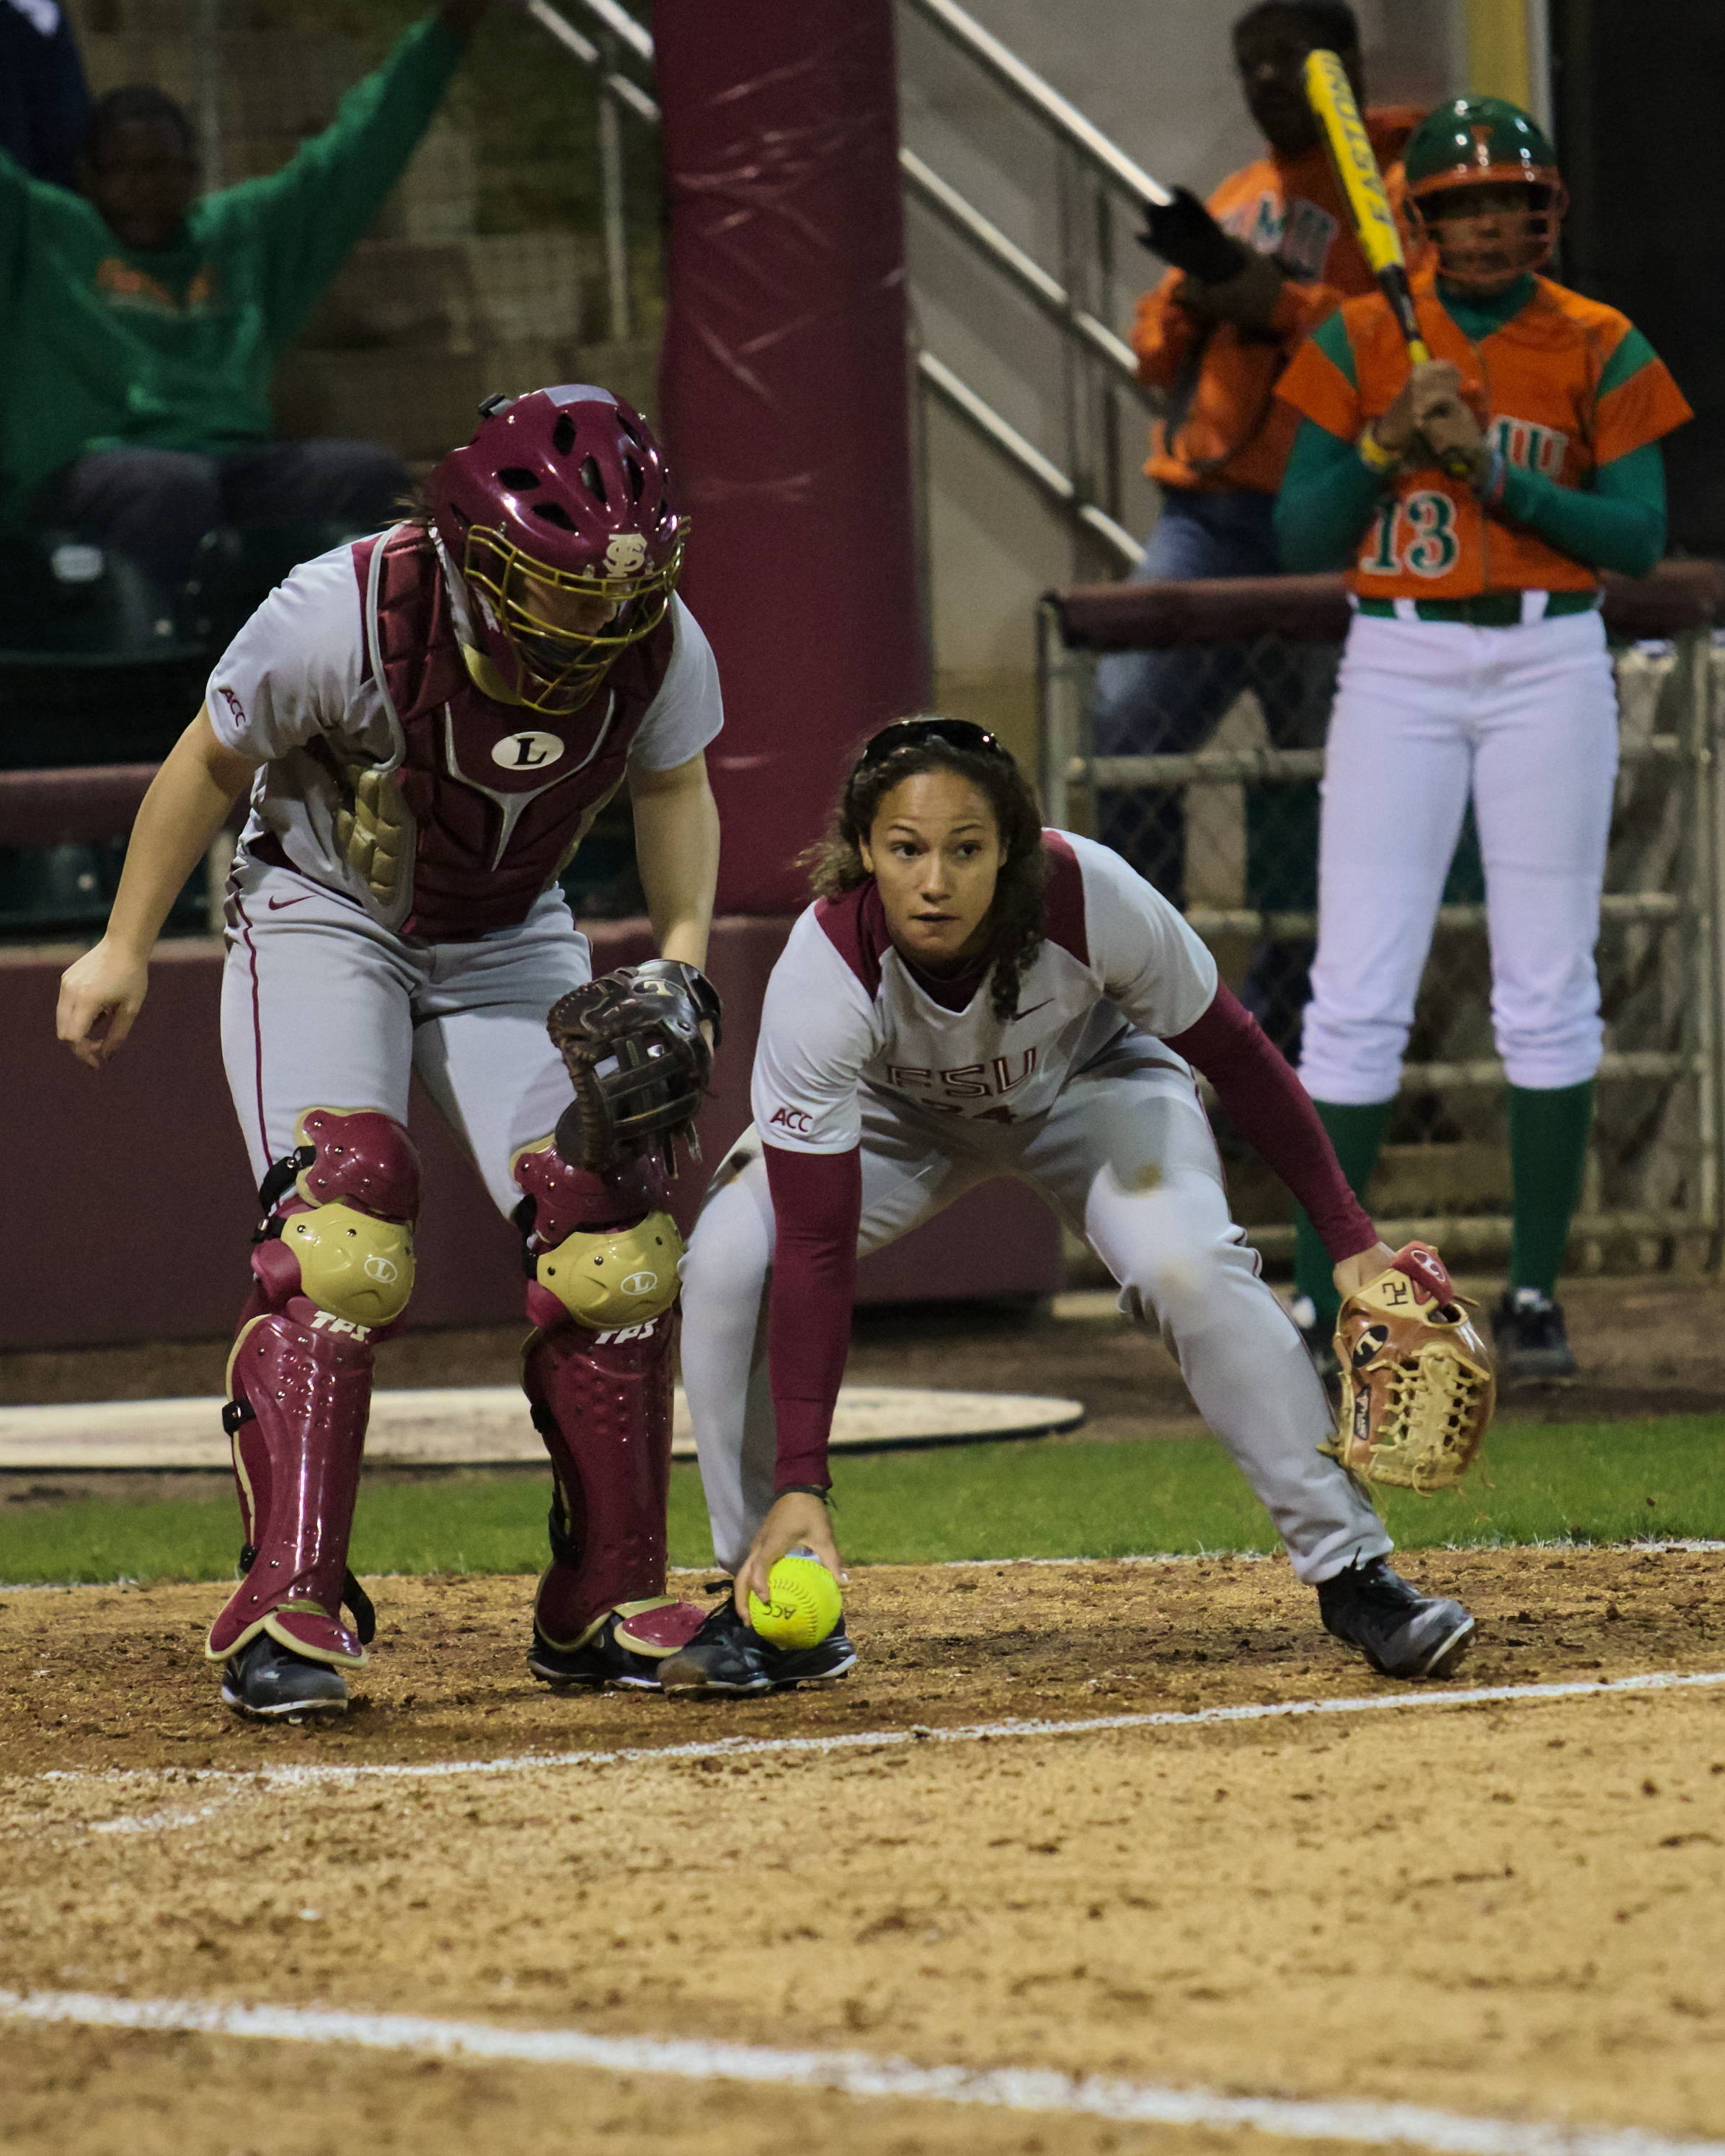 Briana Hamilton (24), keeping the ball foul, FSU vs FAMU, 02/08/13. (Photo by Steve Musco)